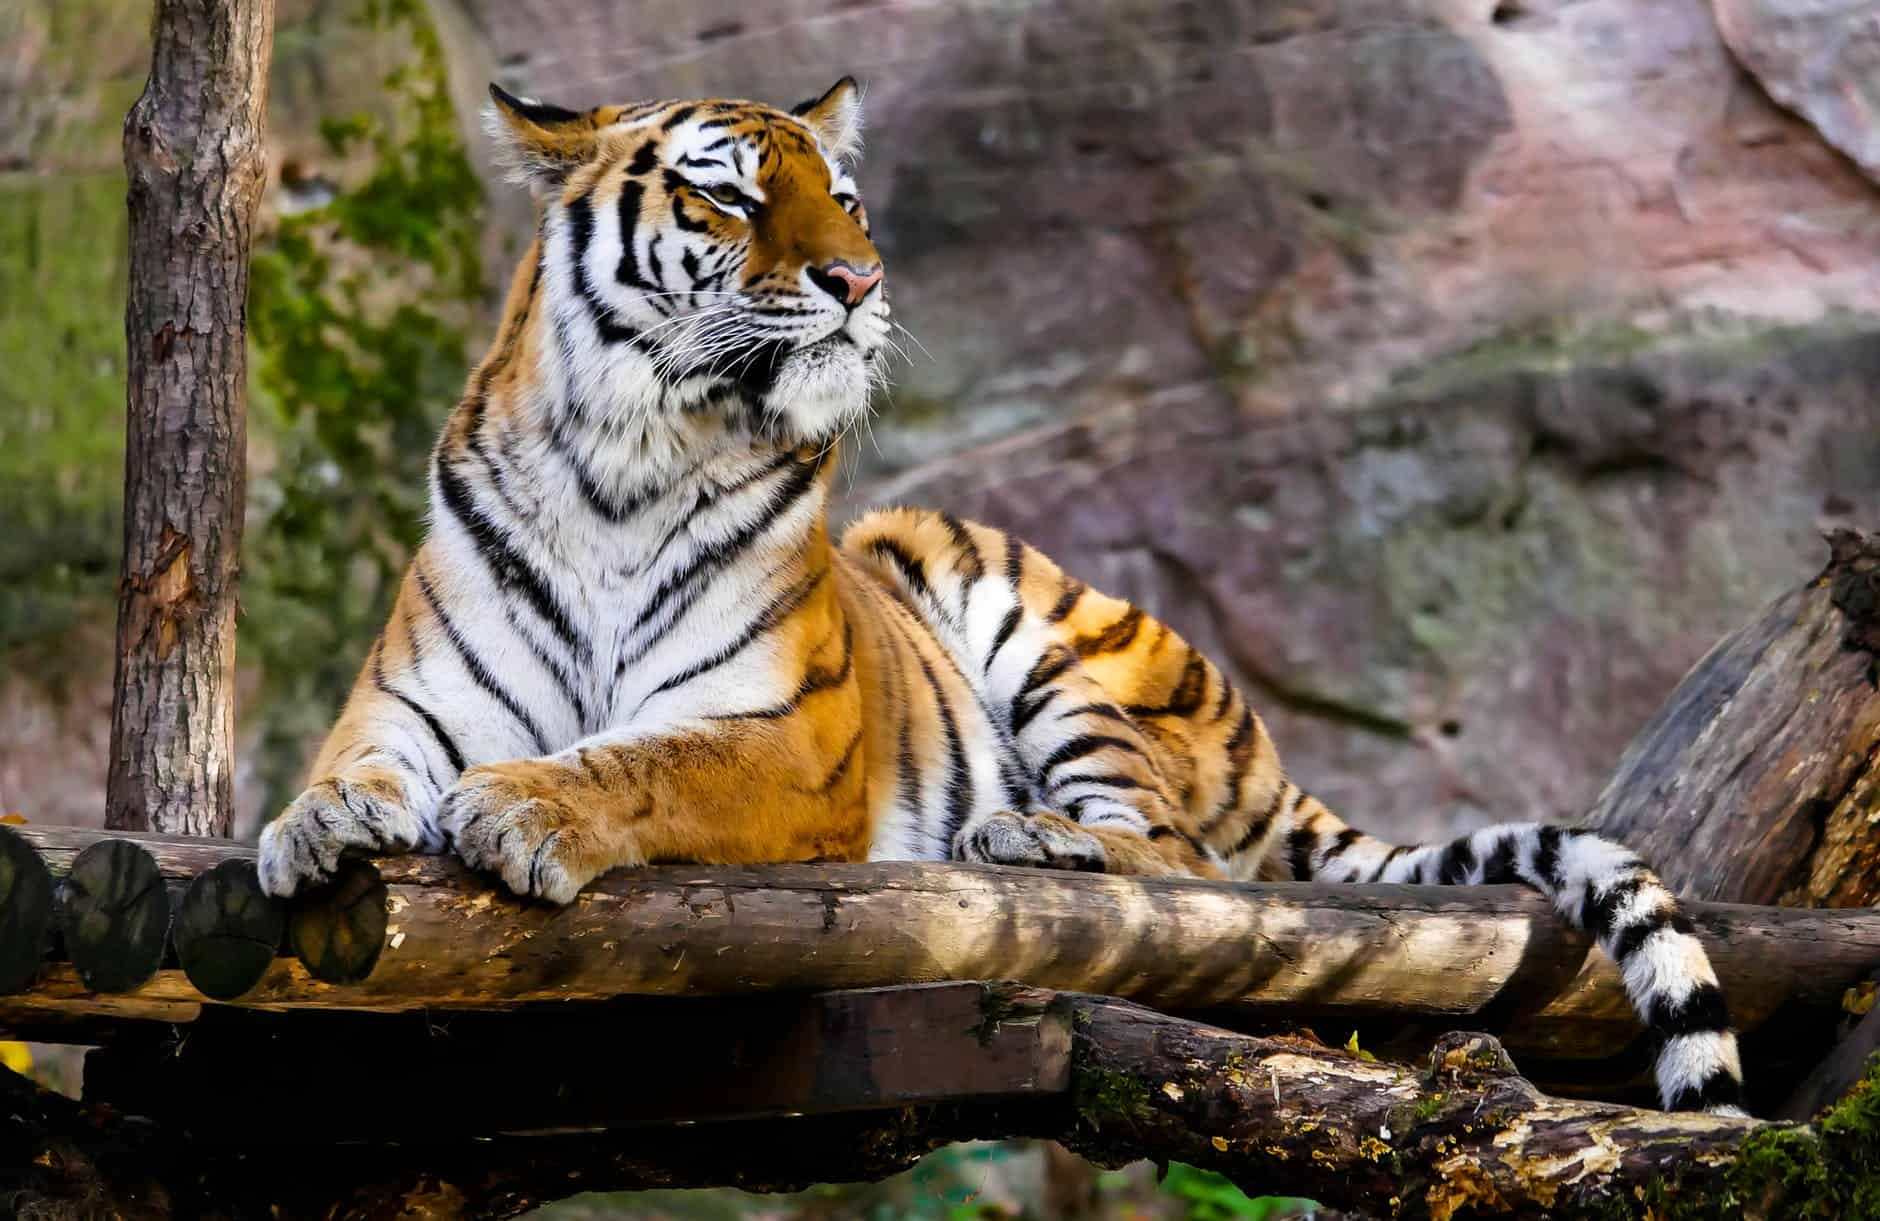 How long does a Bengal Tiger live?